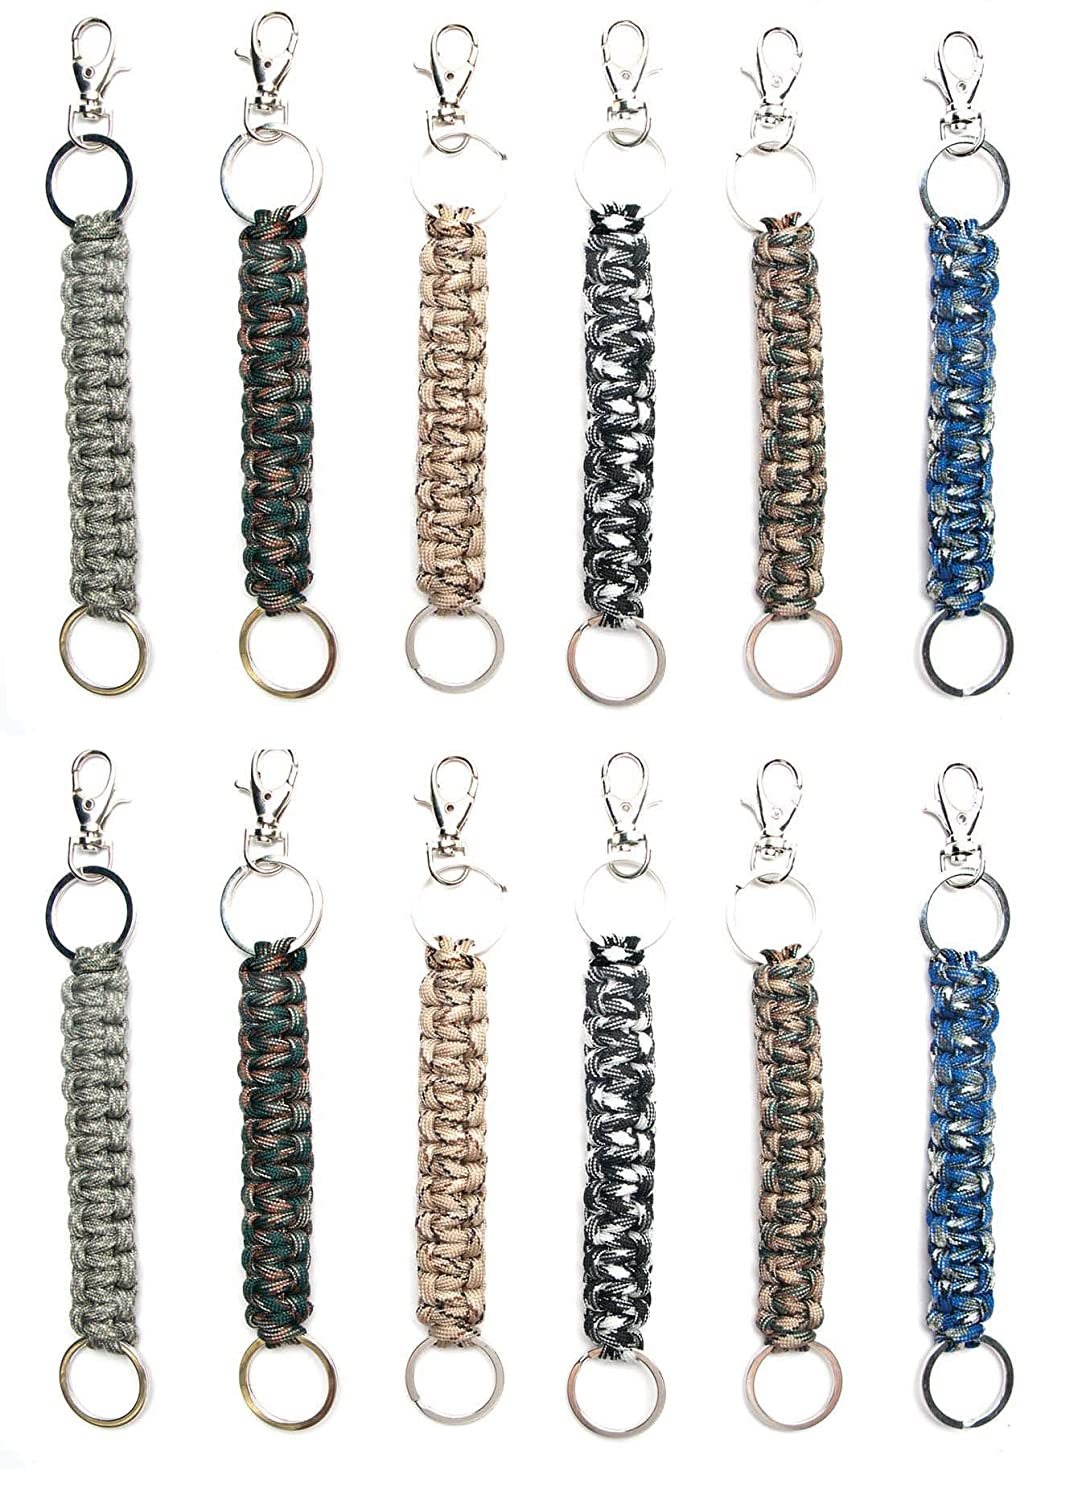 Paracord Keychain Keyrings for Men Boys Women Girls (12 Pack) Voodoo Doll Cobra Braid Key Fobs Braided with Genuine Parachute Cord Great Paracord Party Favors (Paradolls) Frogsac